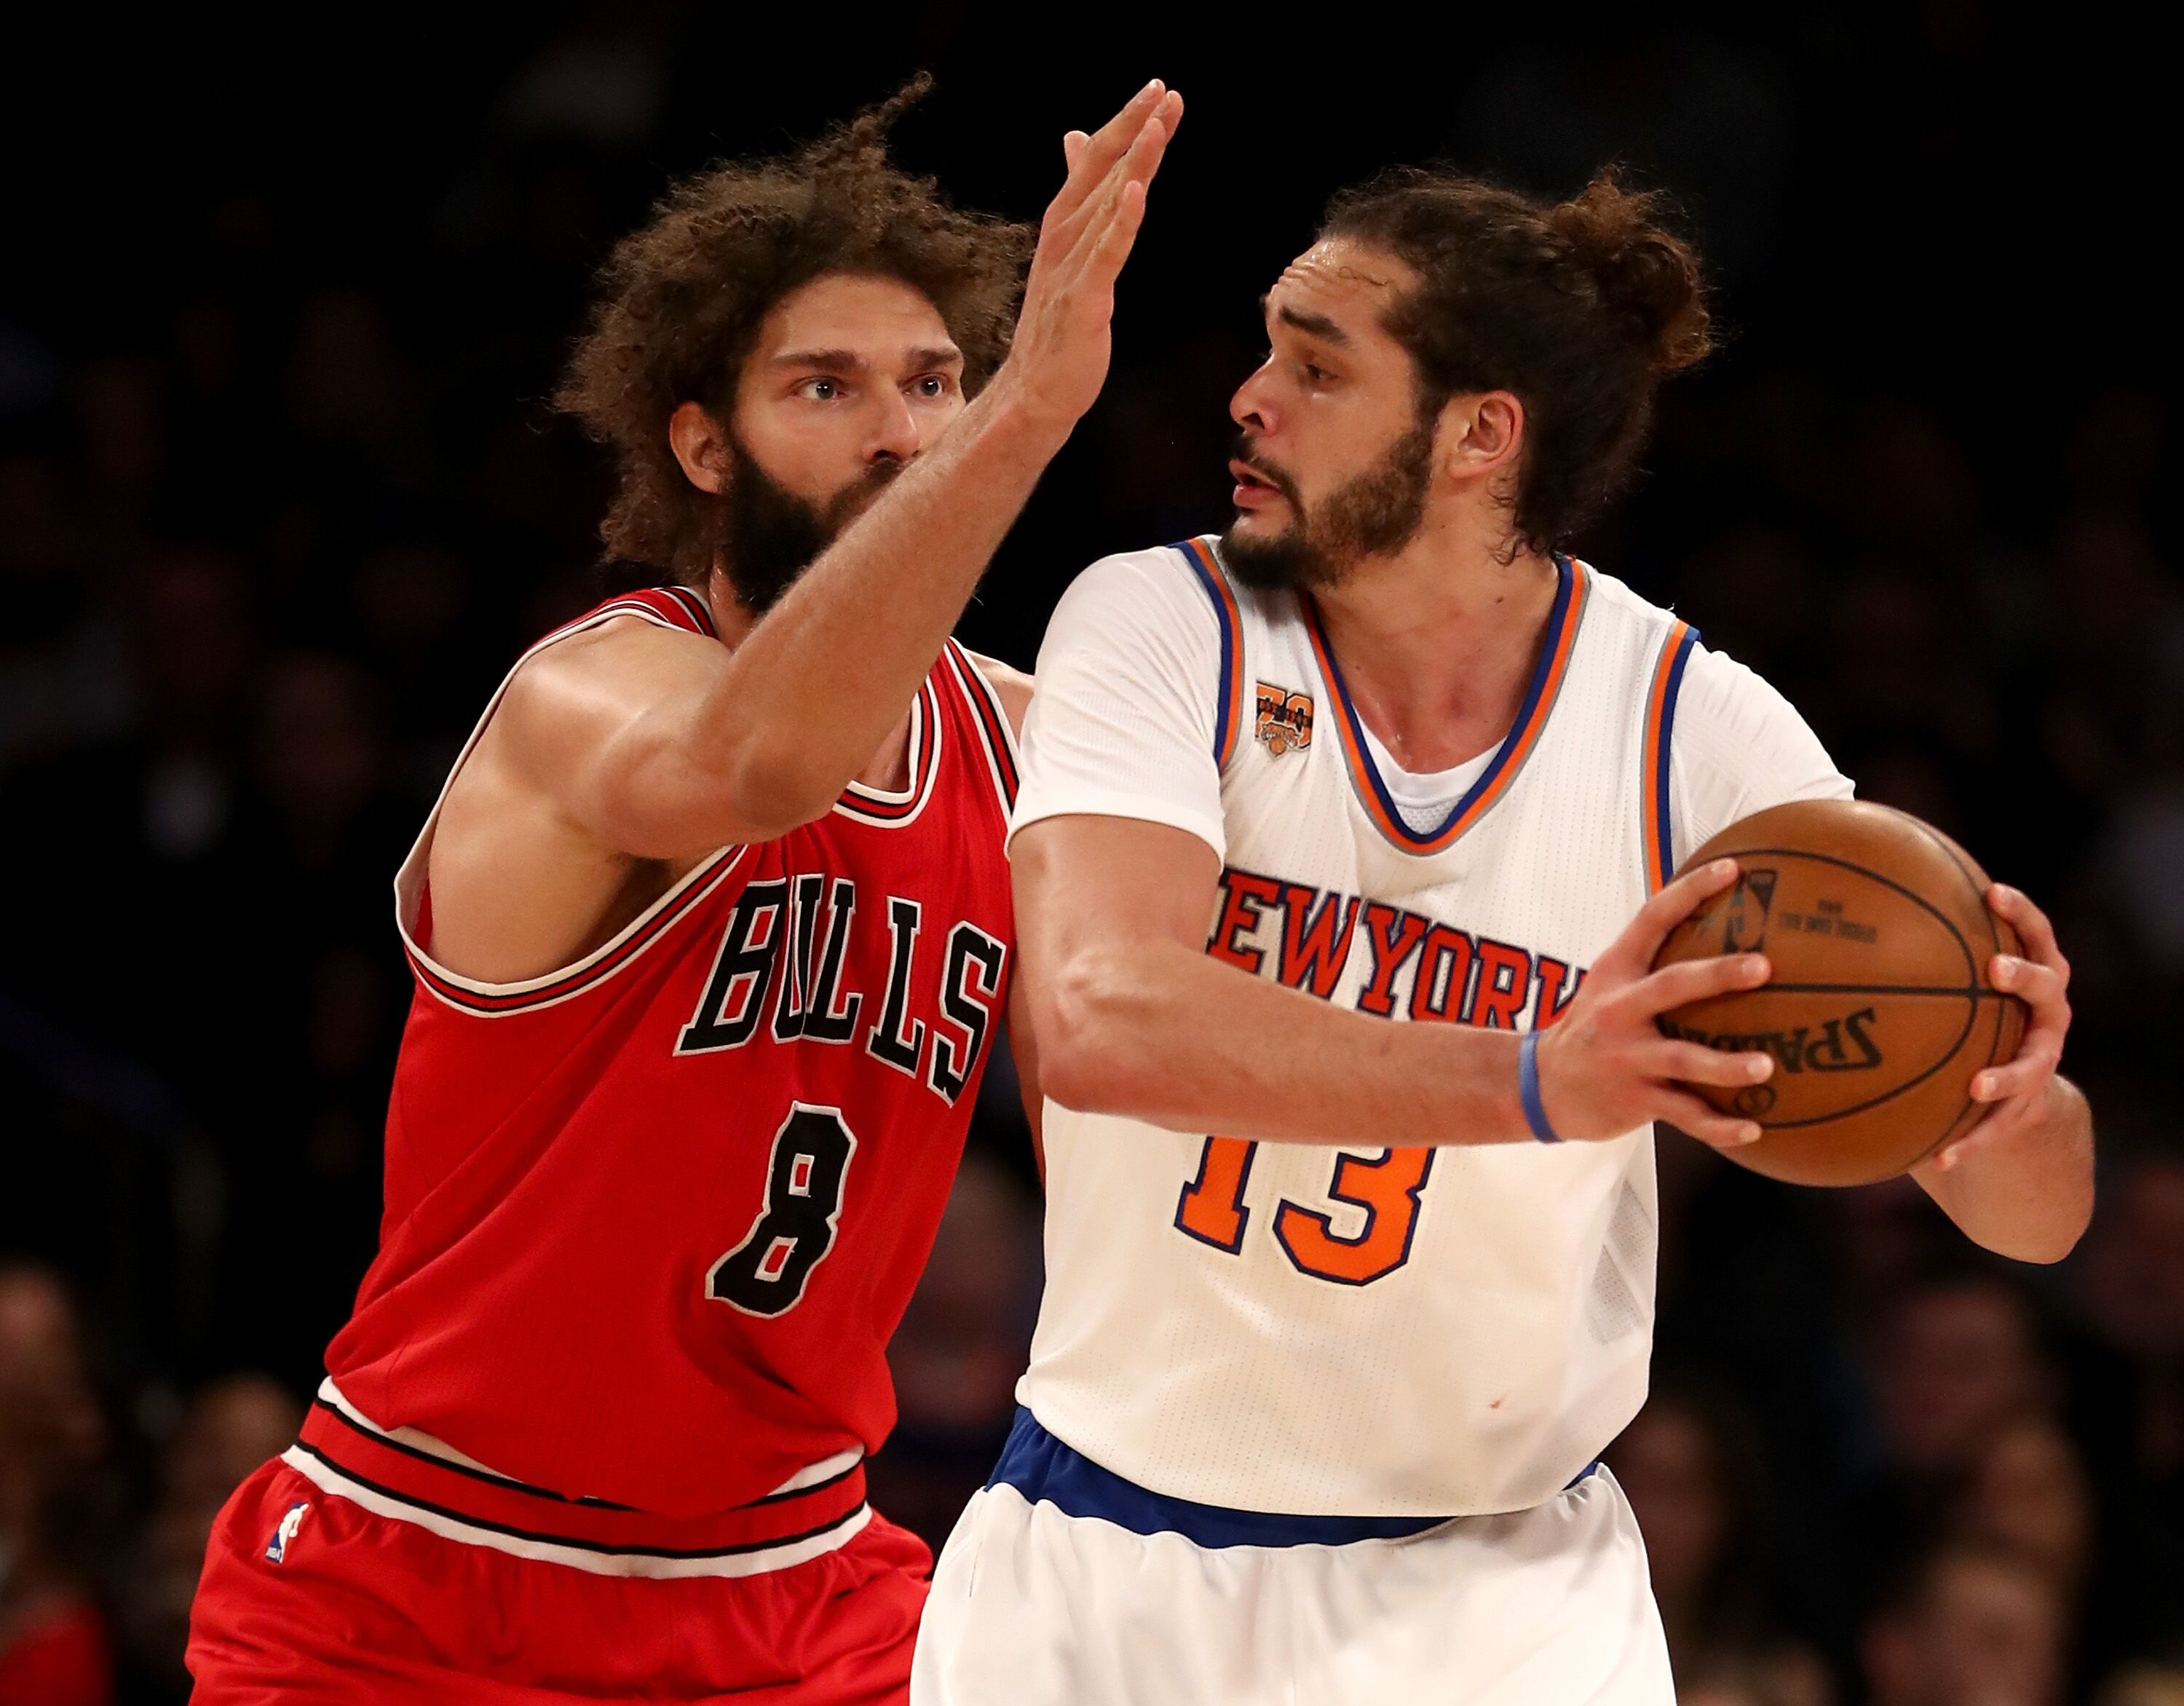 631579668-chicago-bulls-v-new-york-knicks.jpg